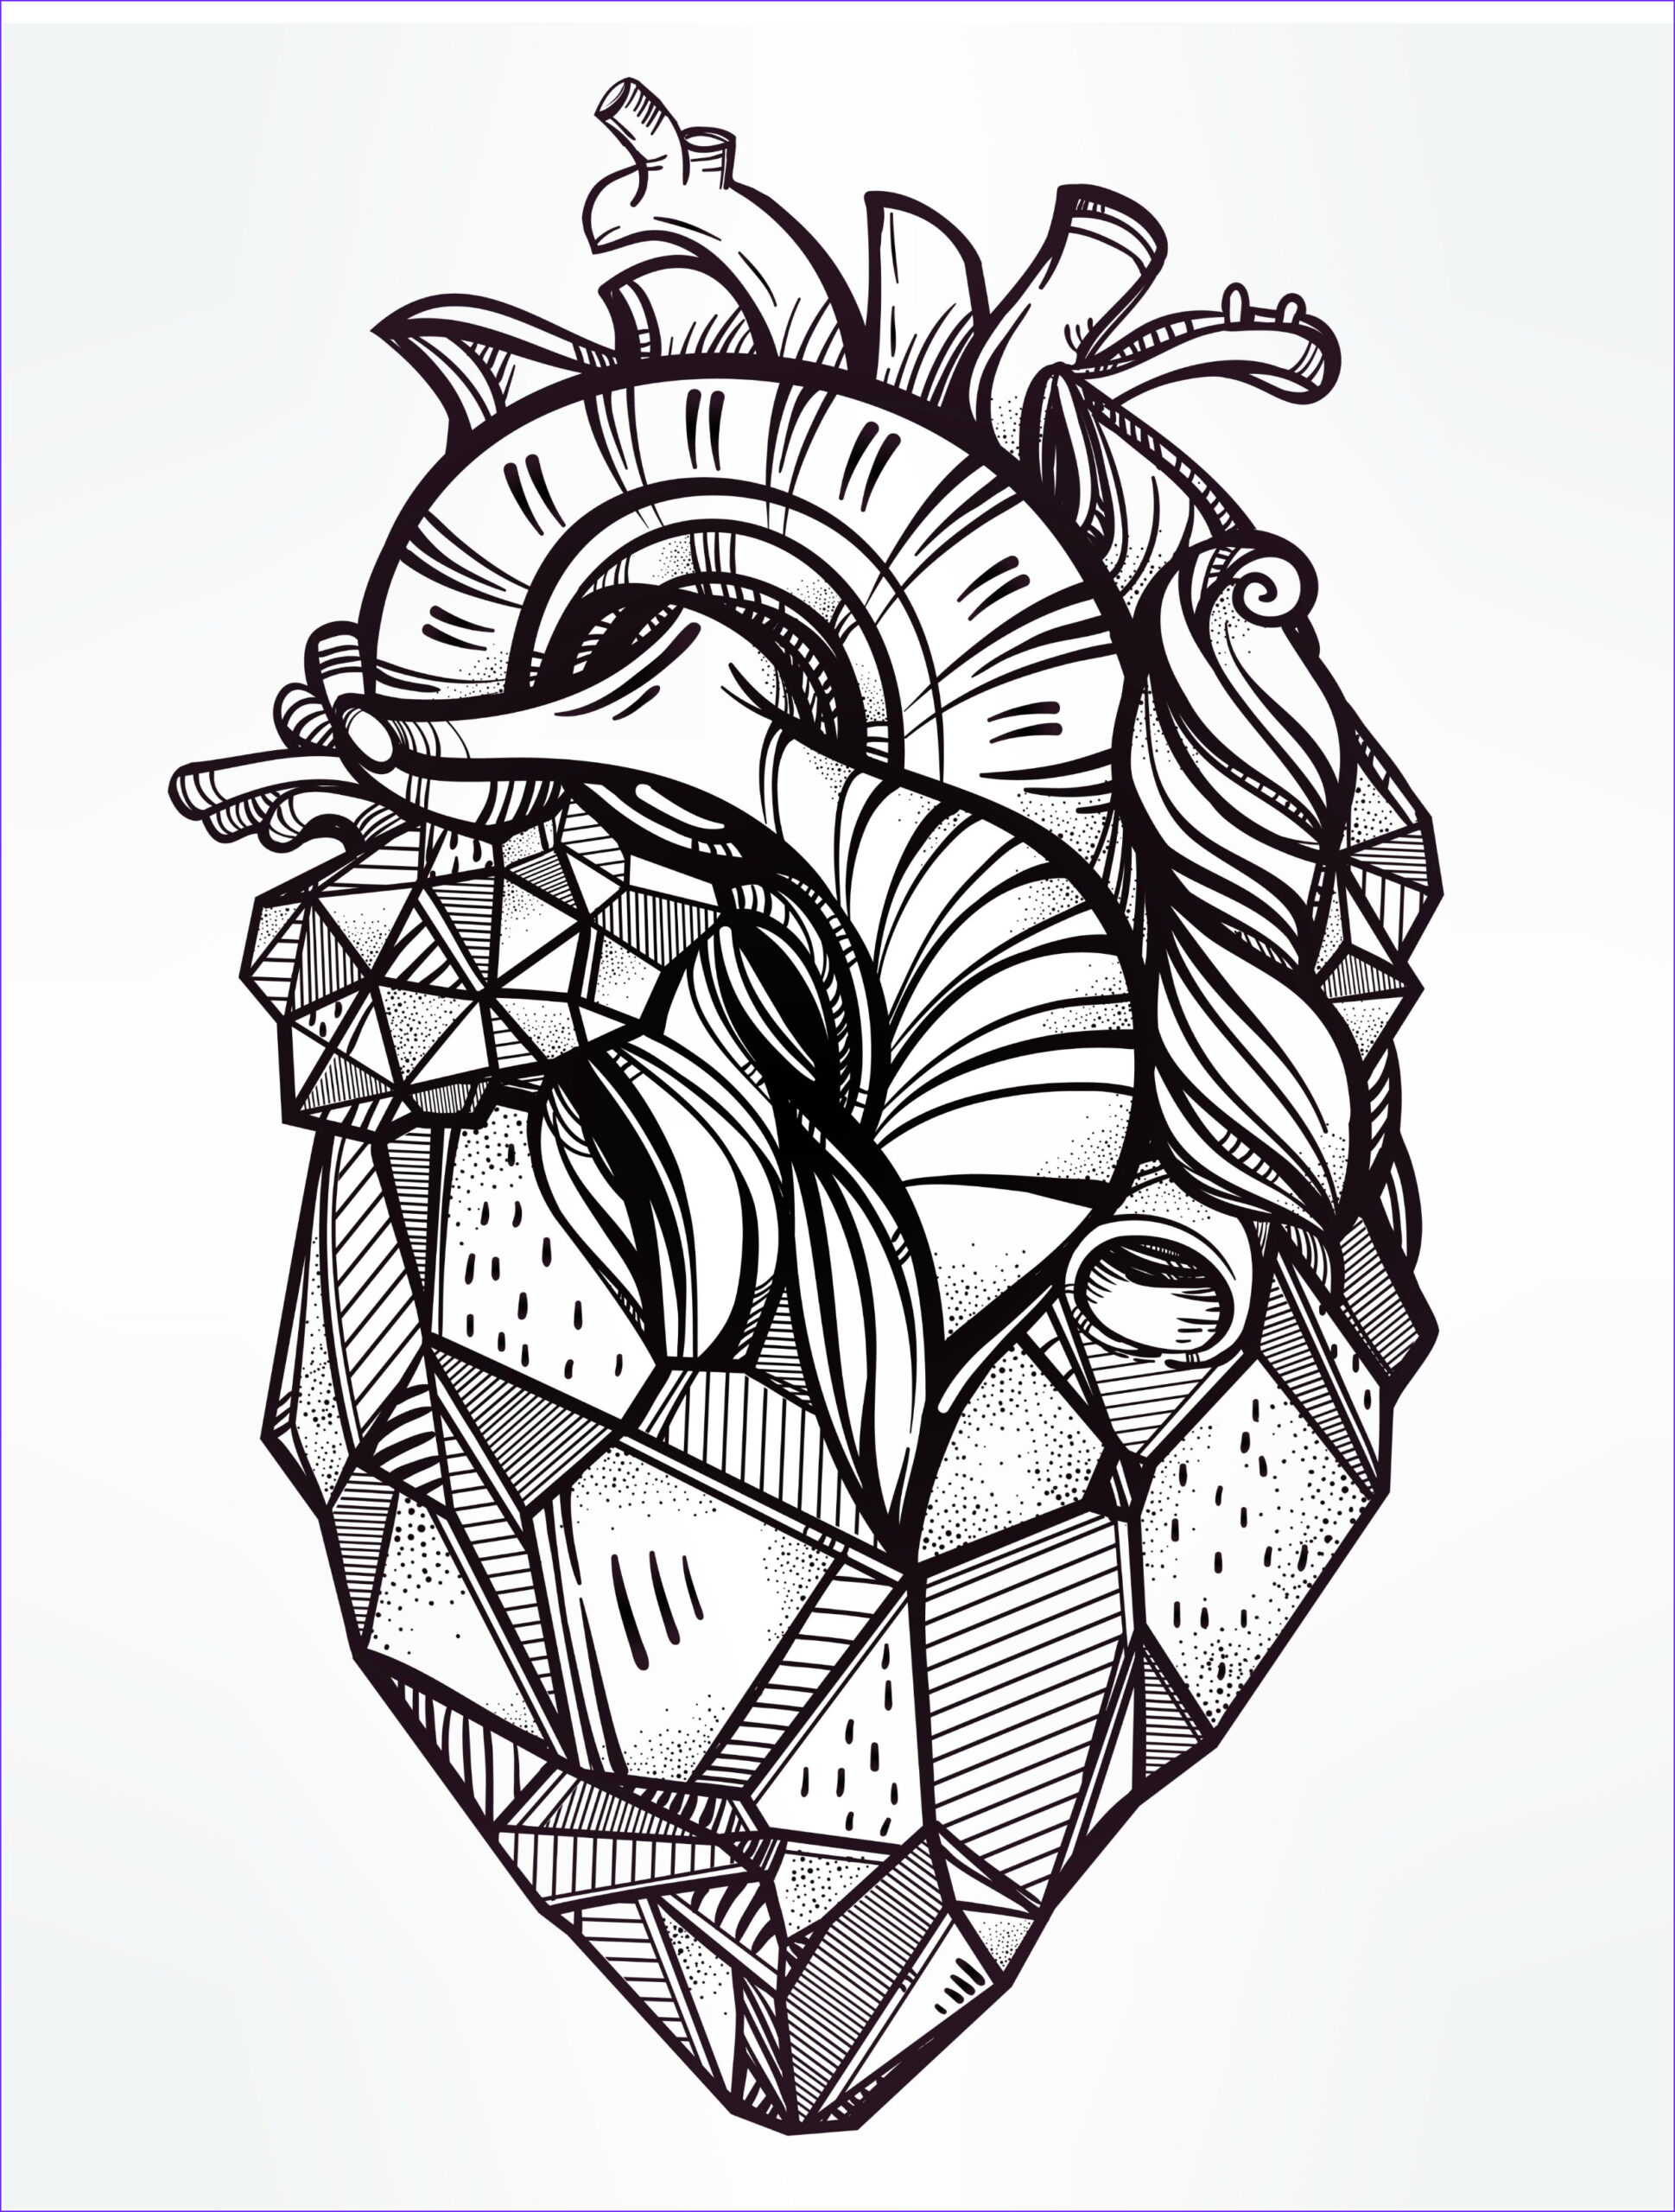 Coloring Pages to Print for Adults Luxury Stock 20 Free Printable Valentines Adult Coloring Pages Nerdy